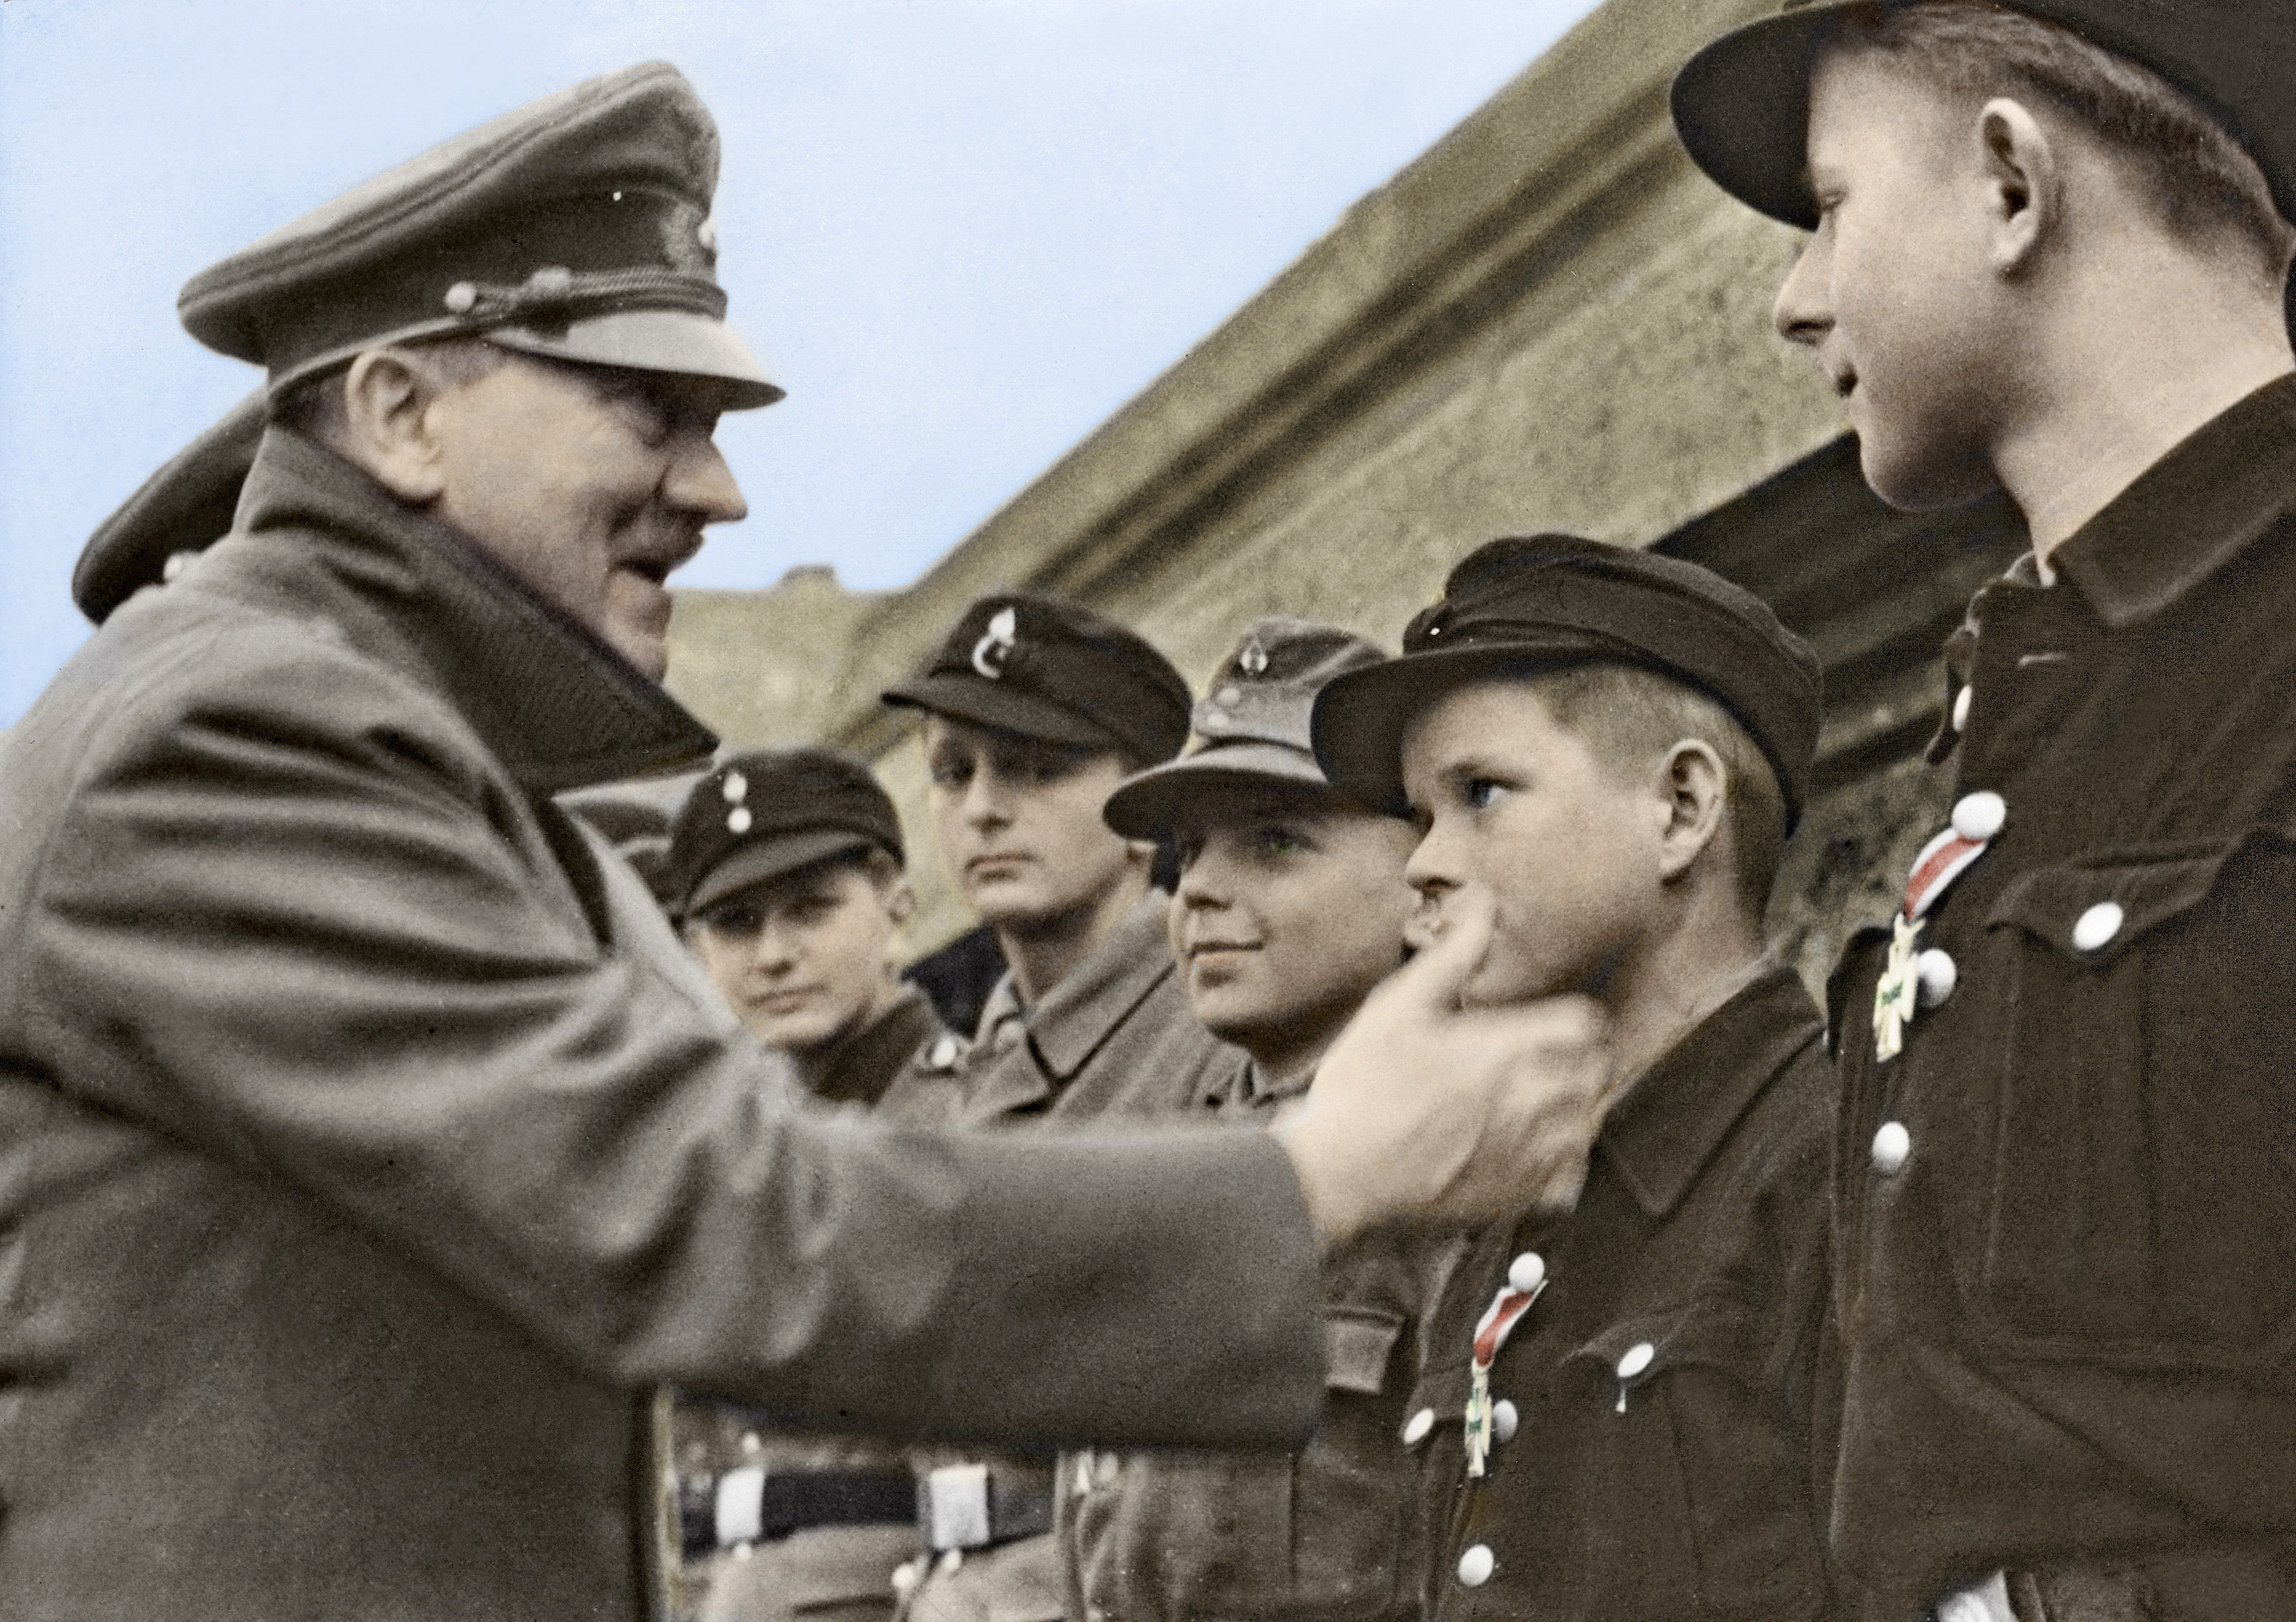 Ghosts of the Fuhrer: 70 years after Hitler's death, how